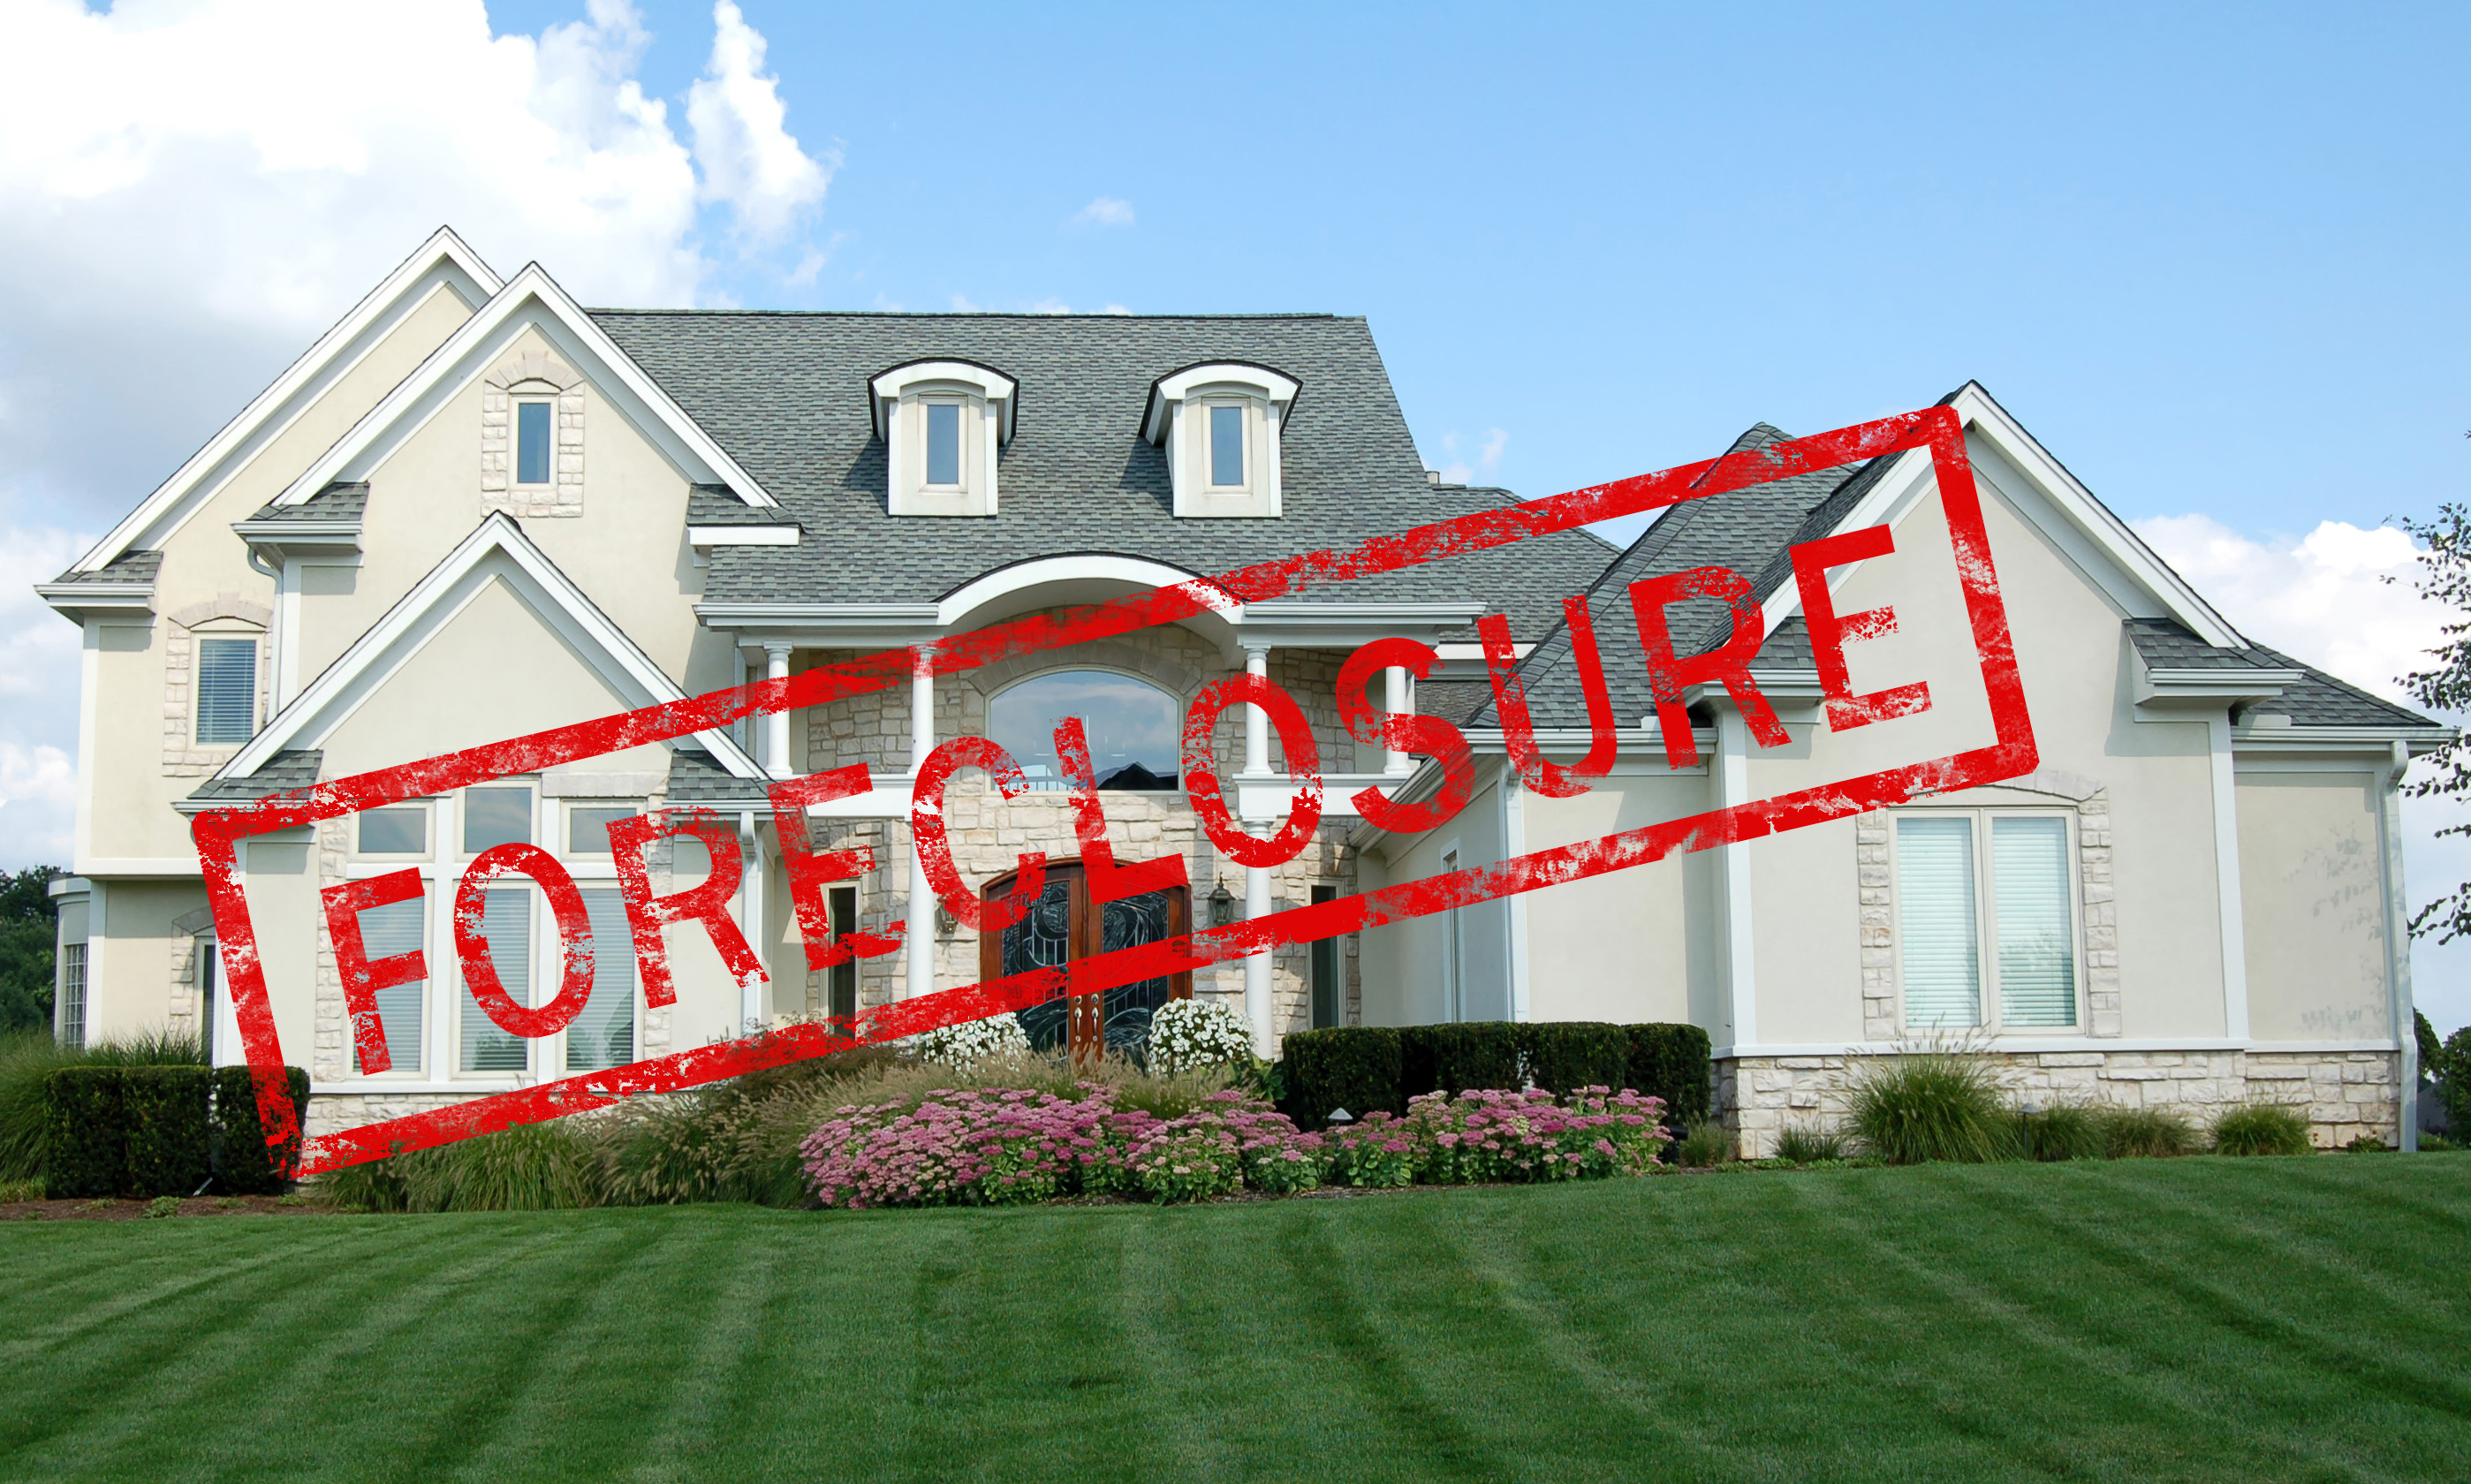 Call Giles Appraisal Group, Inc. when you need appraisals for Bay foreclosures